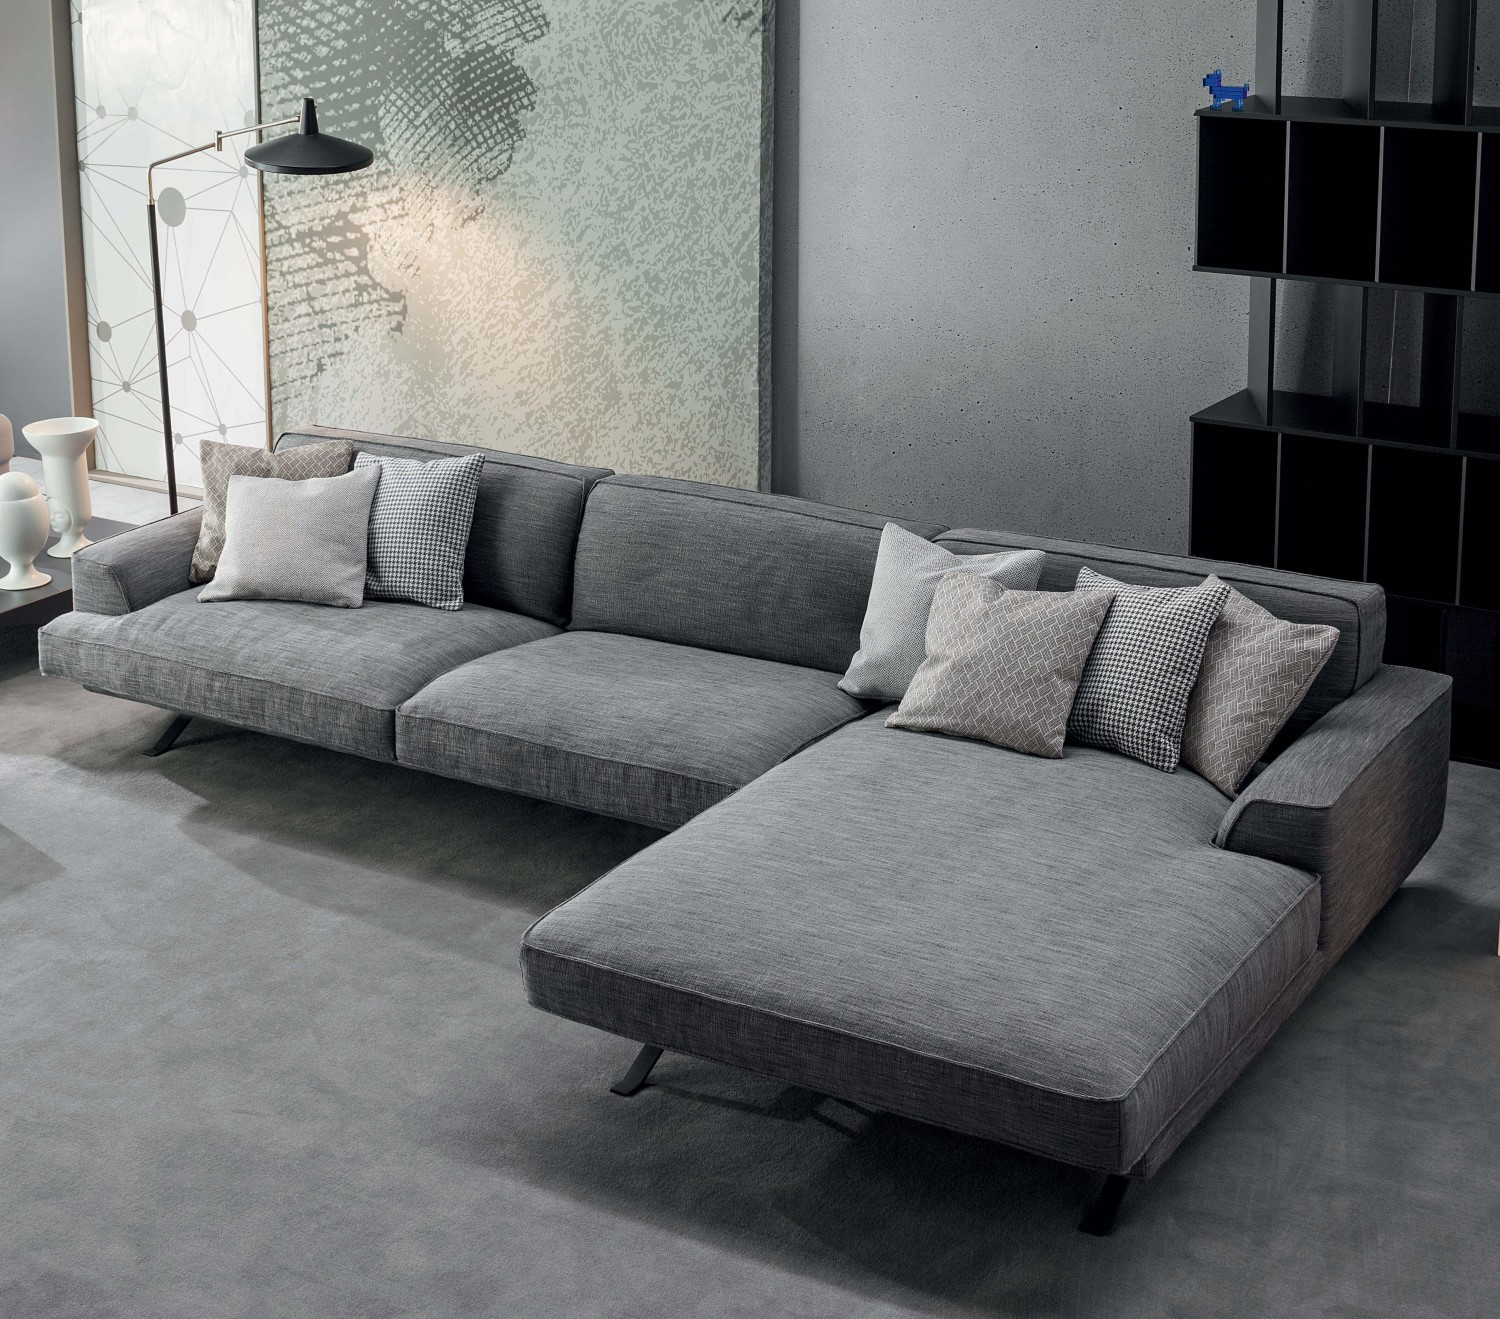 Slab Plus fabric sofa with chaise longue - DIOTTI.COM